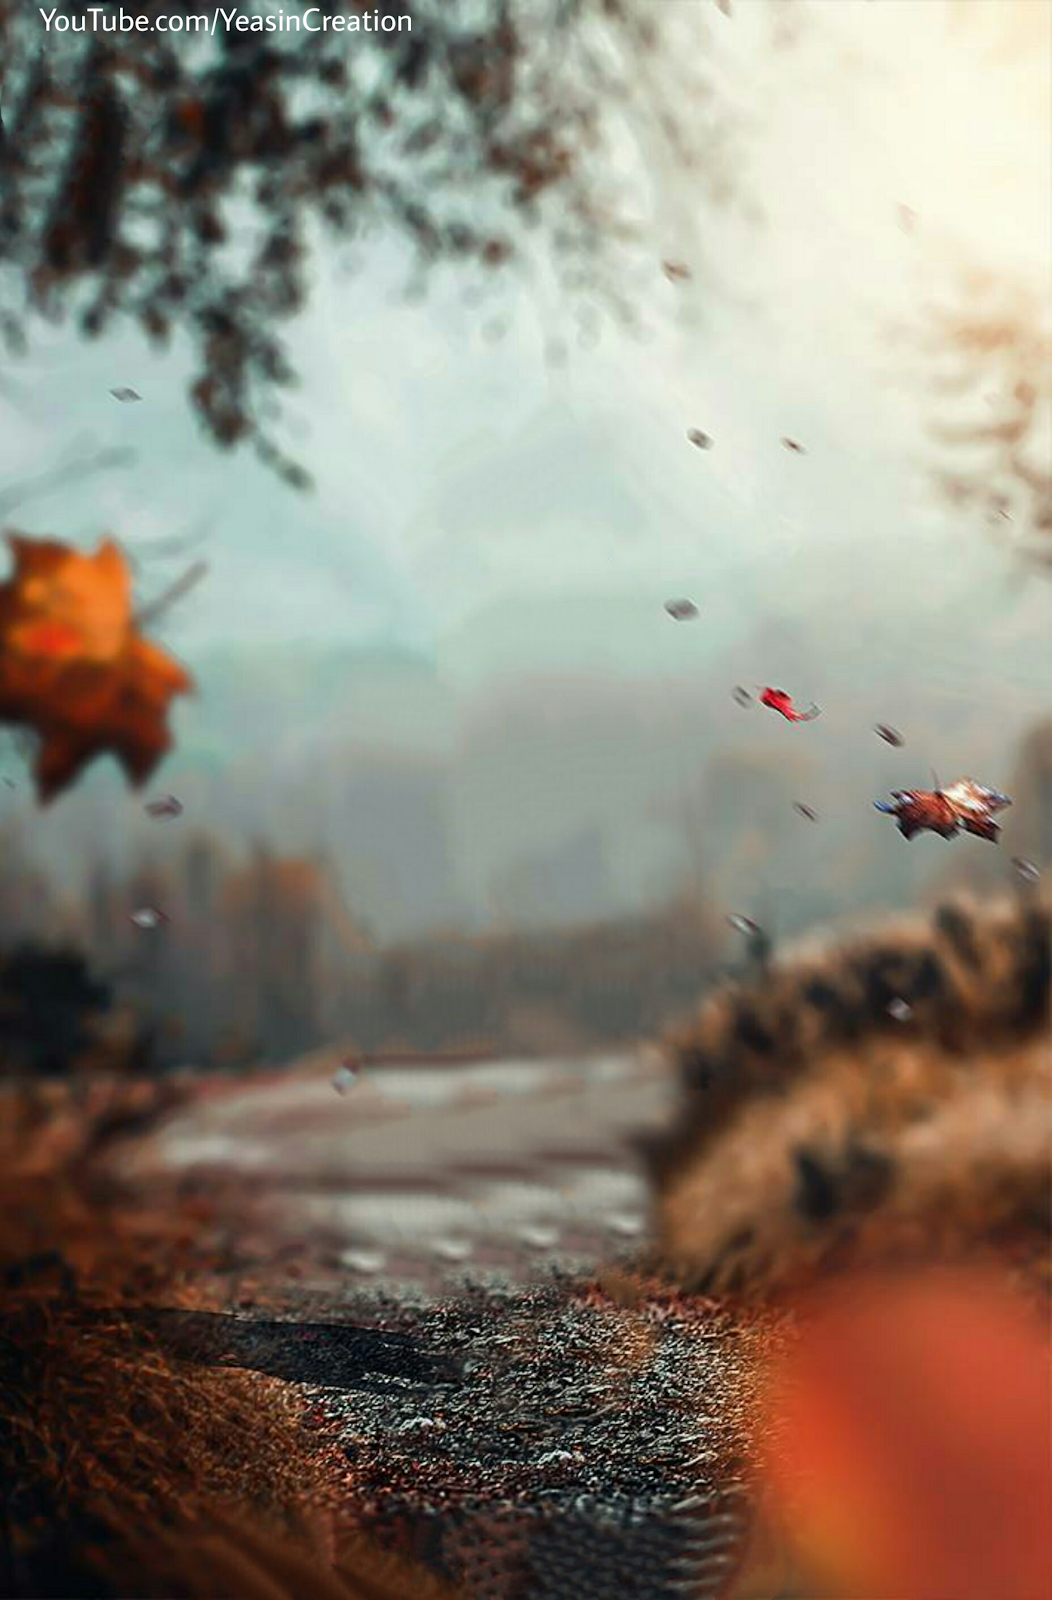 Top 10 Awesome Manipulation Hd Background Download By Yeasin